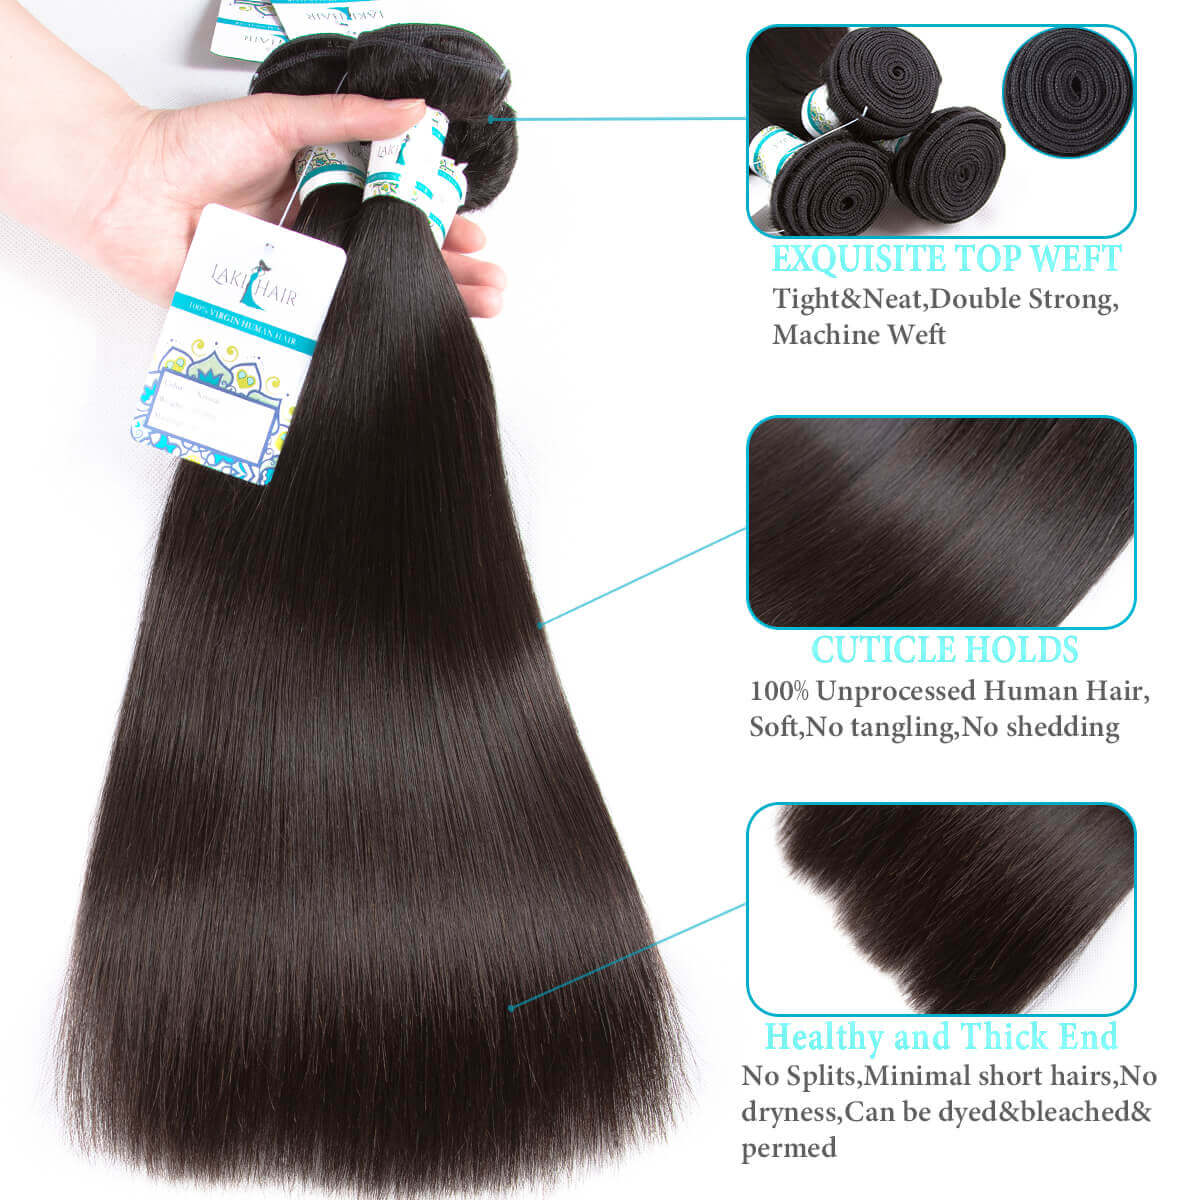 Lakihair Virgin Human Hair Bundles 4 Bundles Straight Hair Unprocessed Human Hair Weaving